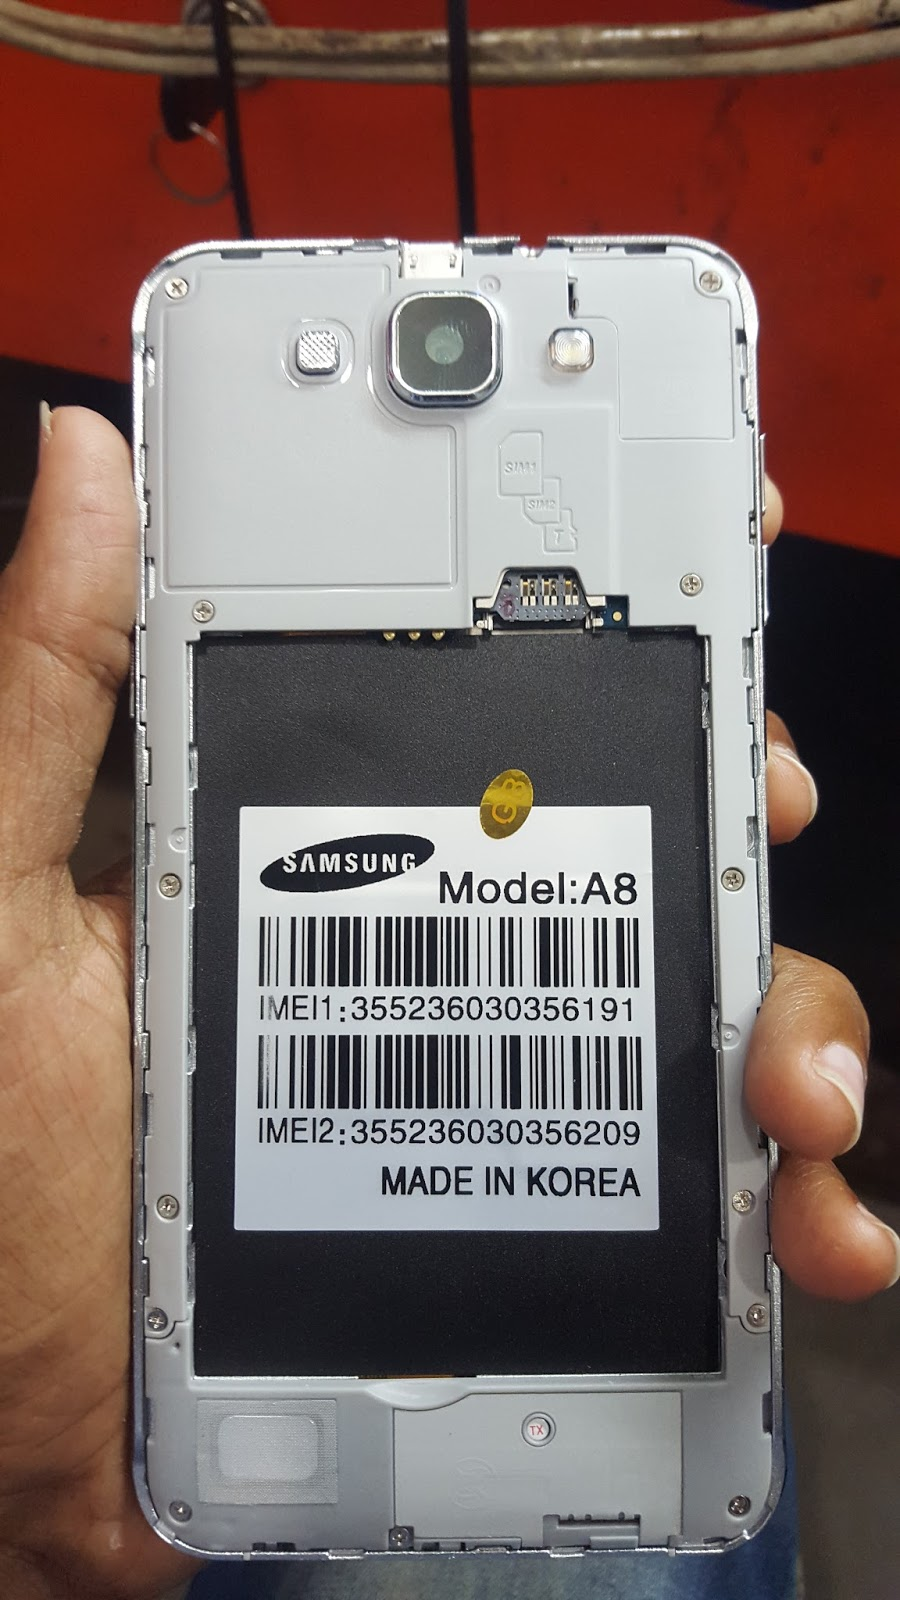 CHINA GSM FIRMWARE: SAMSUNG CLONE A8 FLASH FILE Sam sung